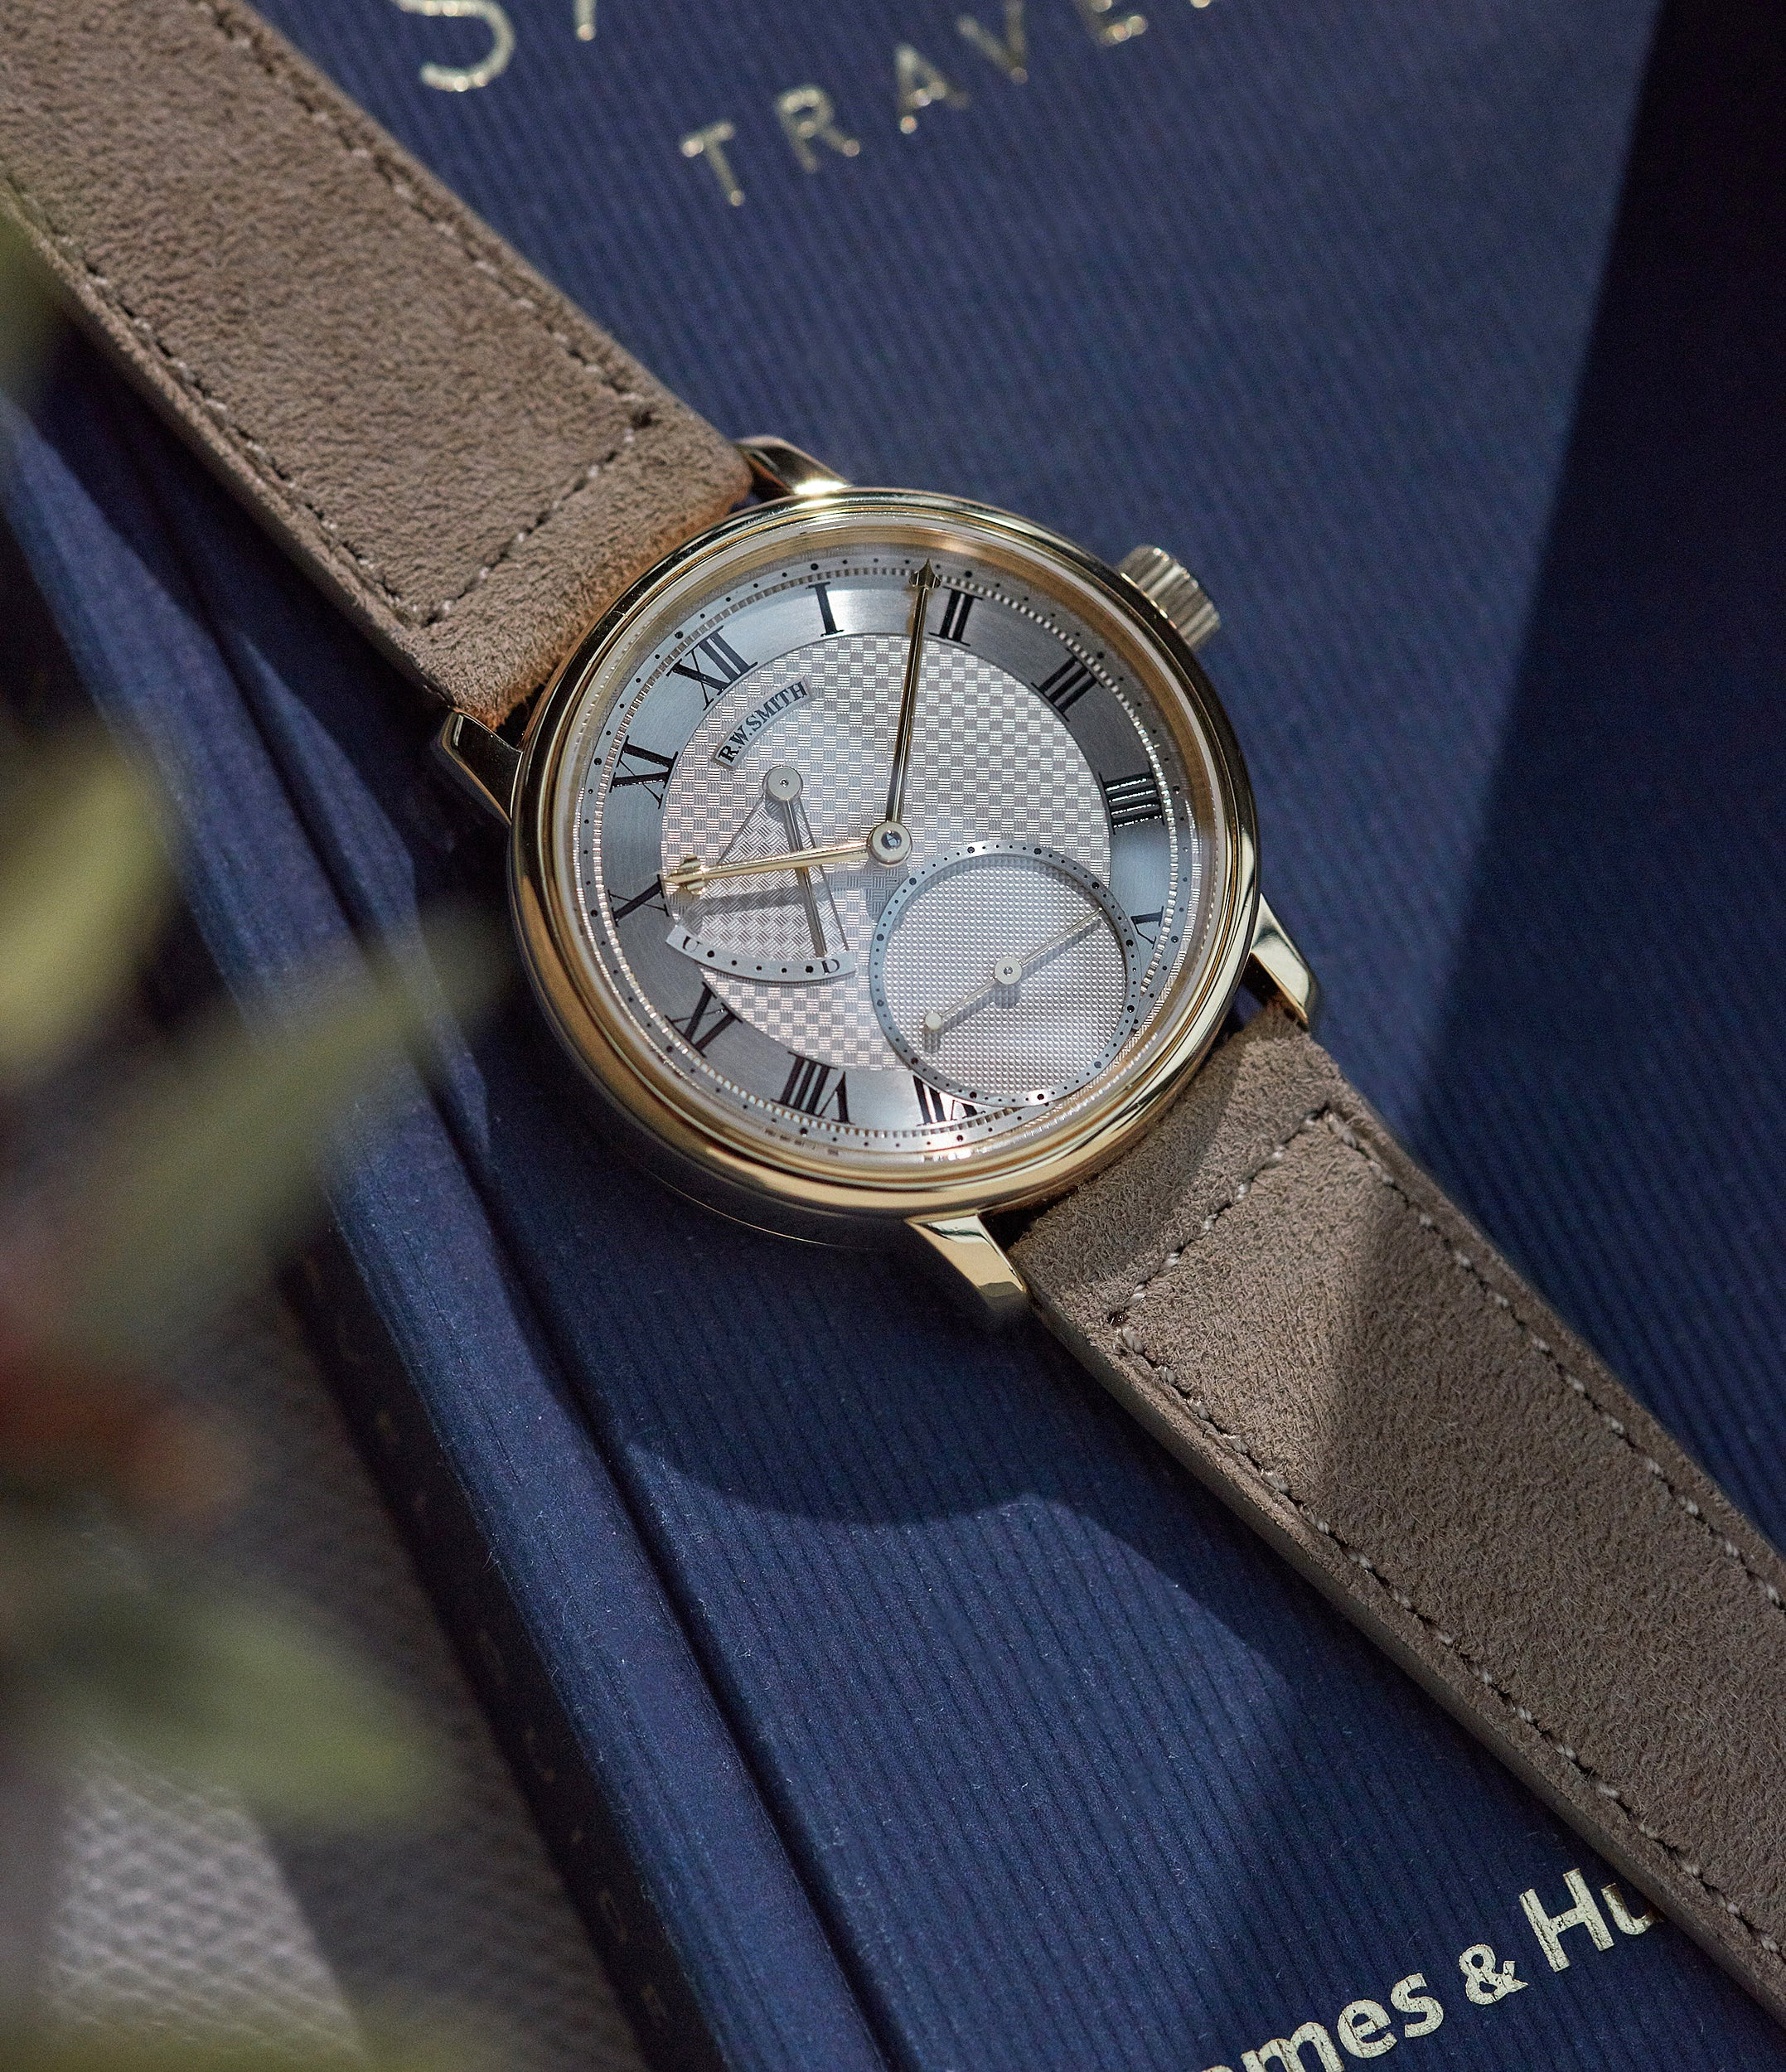 order watch strap light taupe suede boxed stitched Copenhagen watch strap buy at A Collected Man London